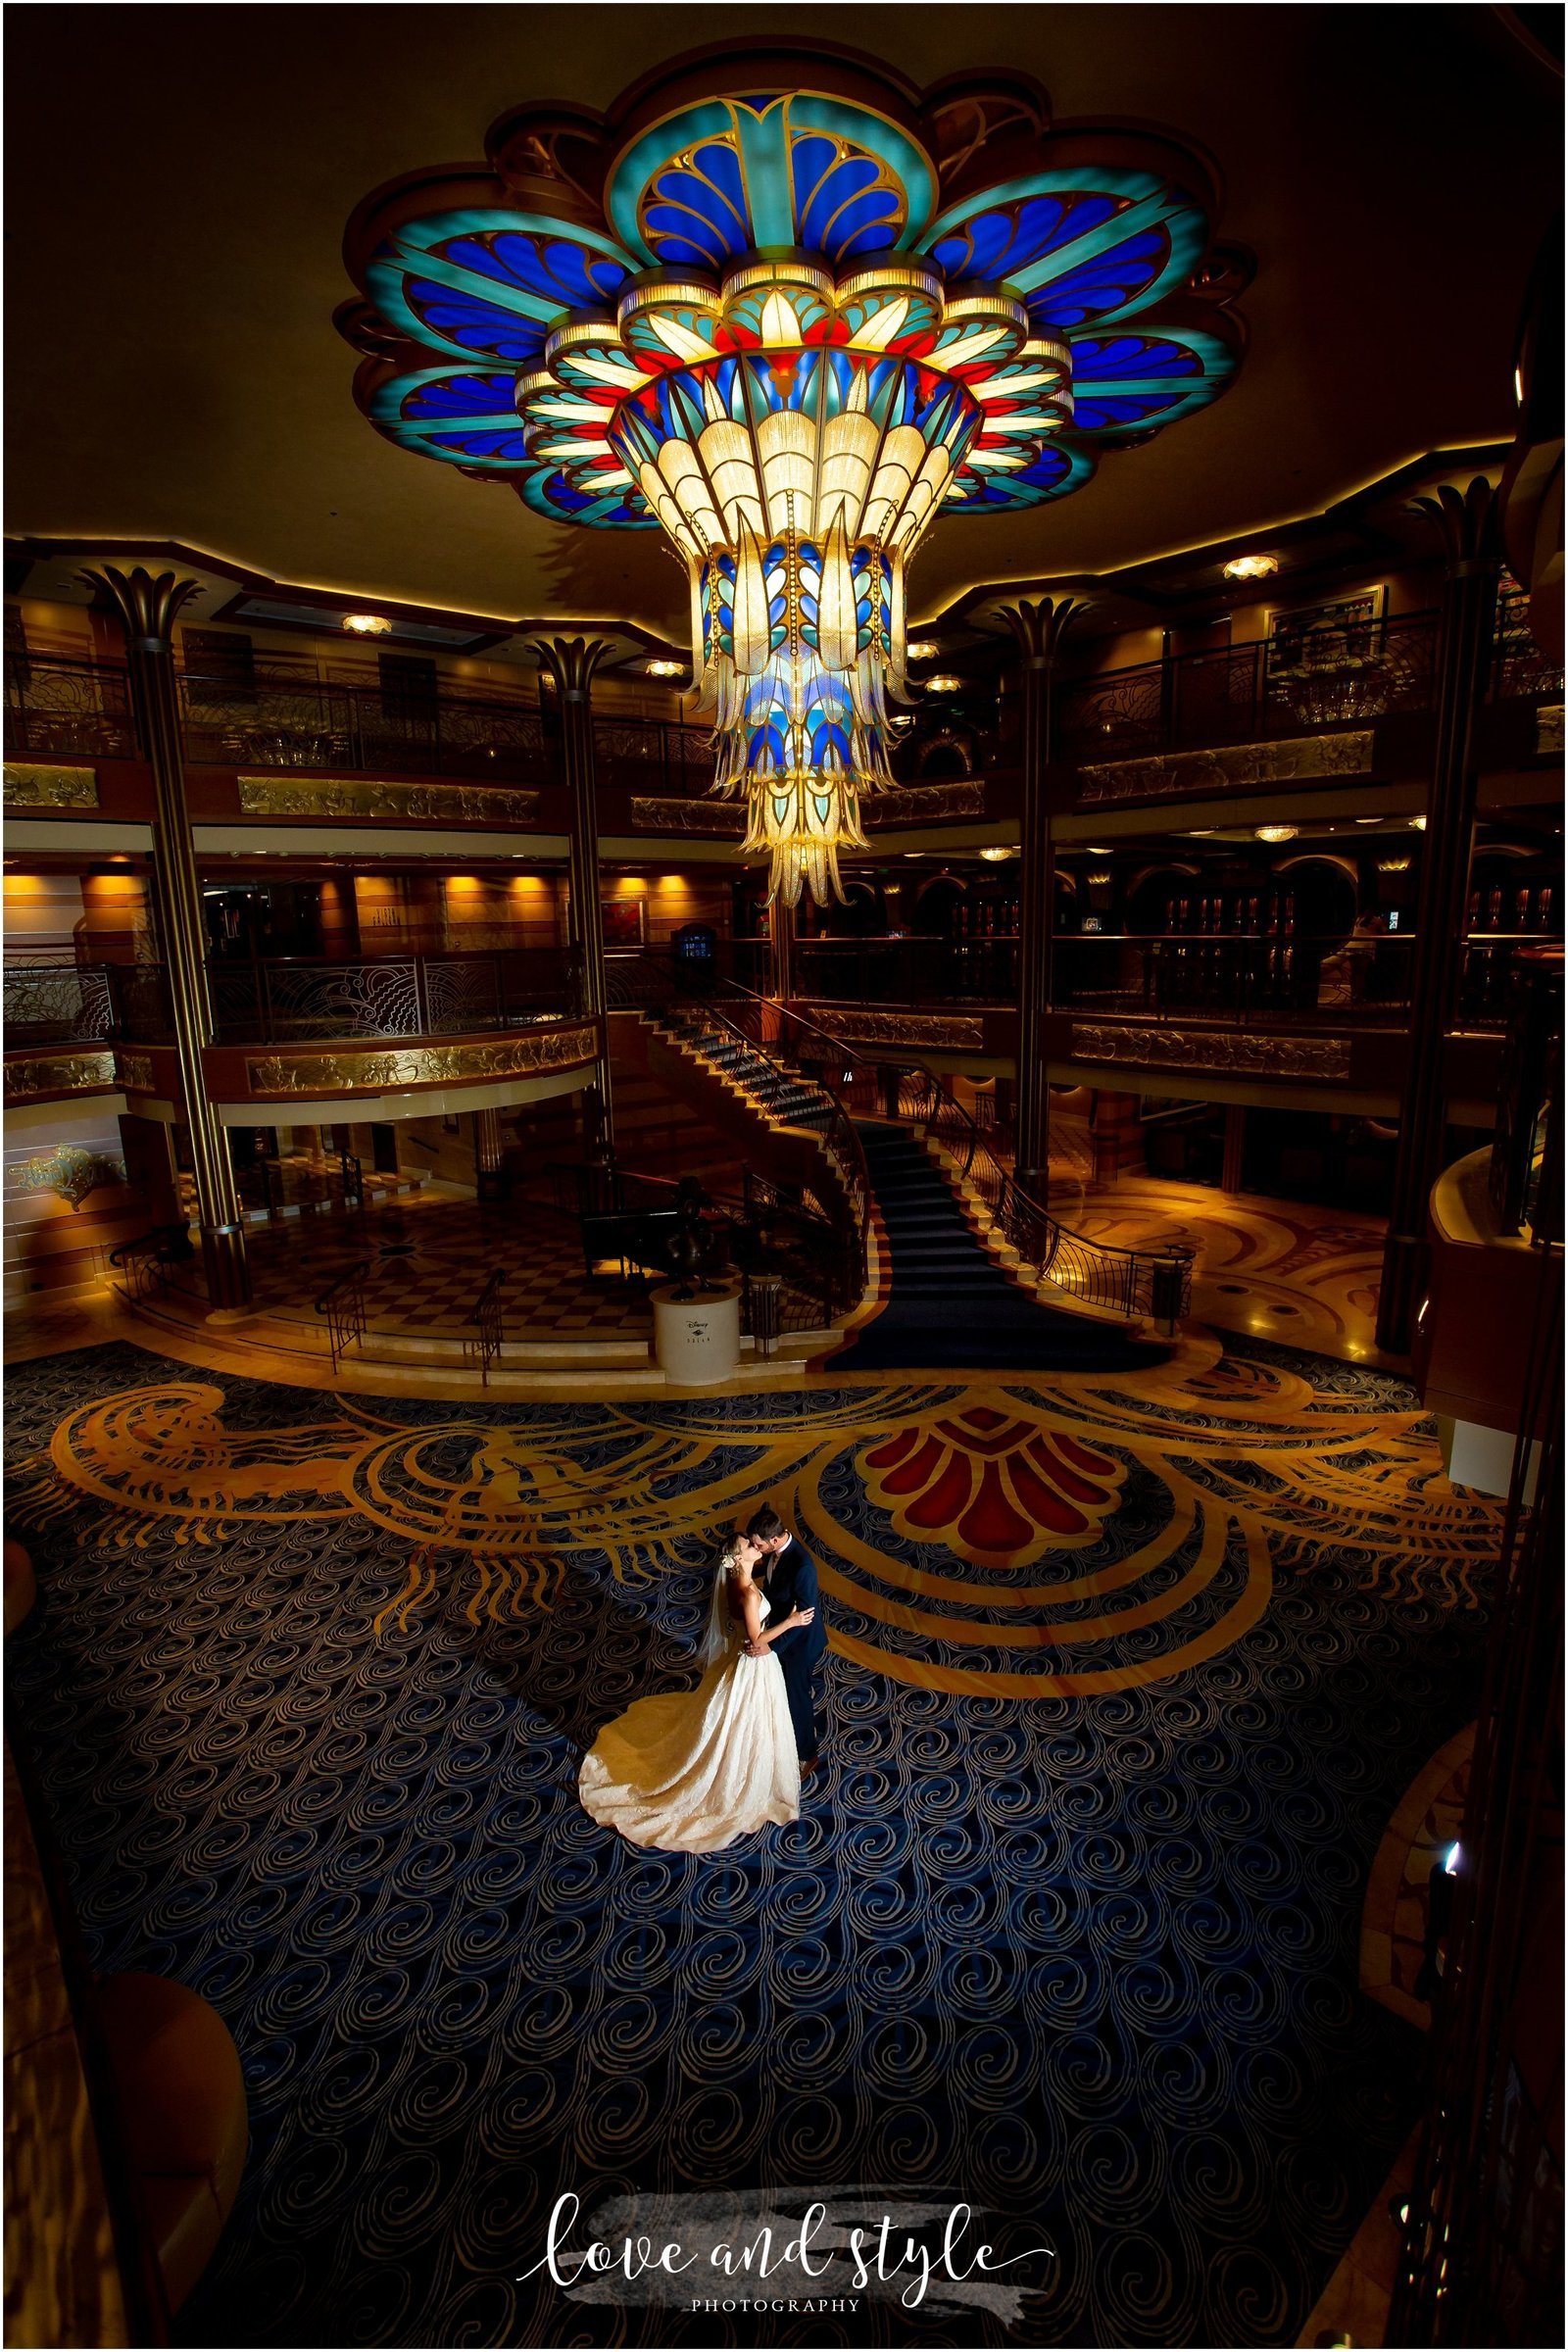 Disney Dream Cruise Wedding Photography bride and groom portrait in the atrium with backlight